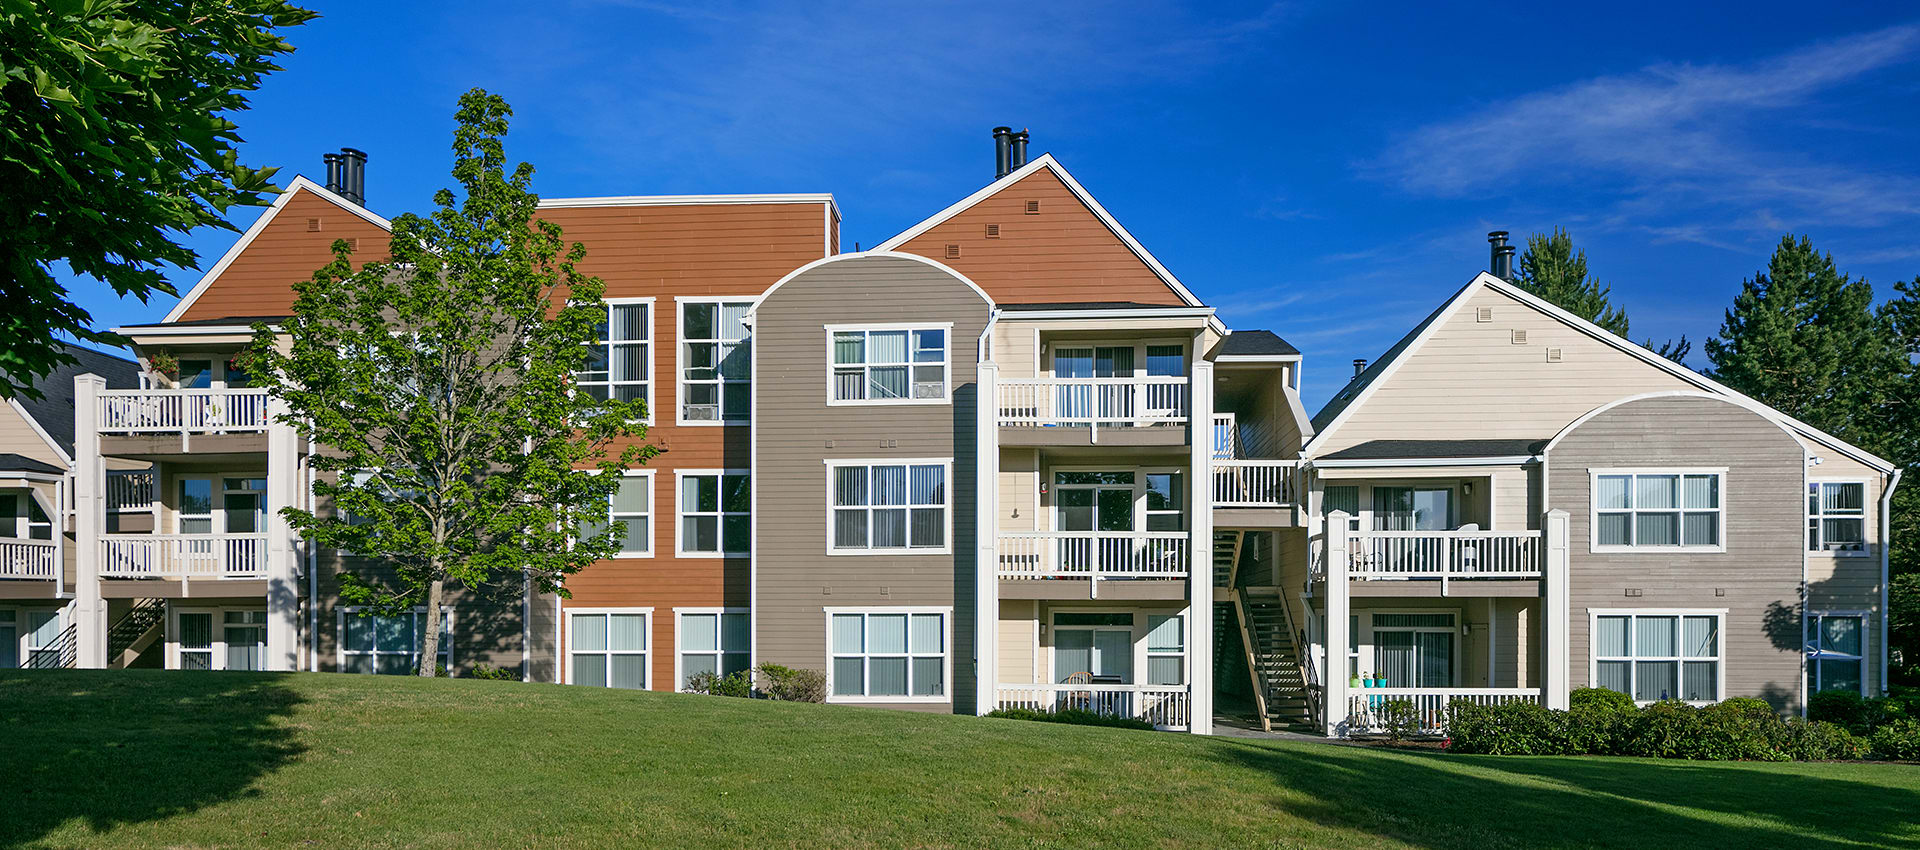 View our floor plans at Center Pointe Apartment Homes on our website